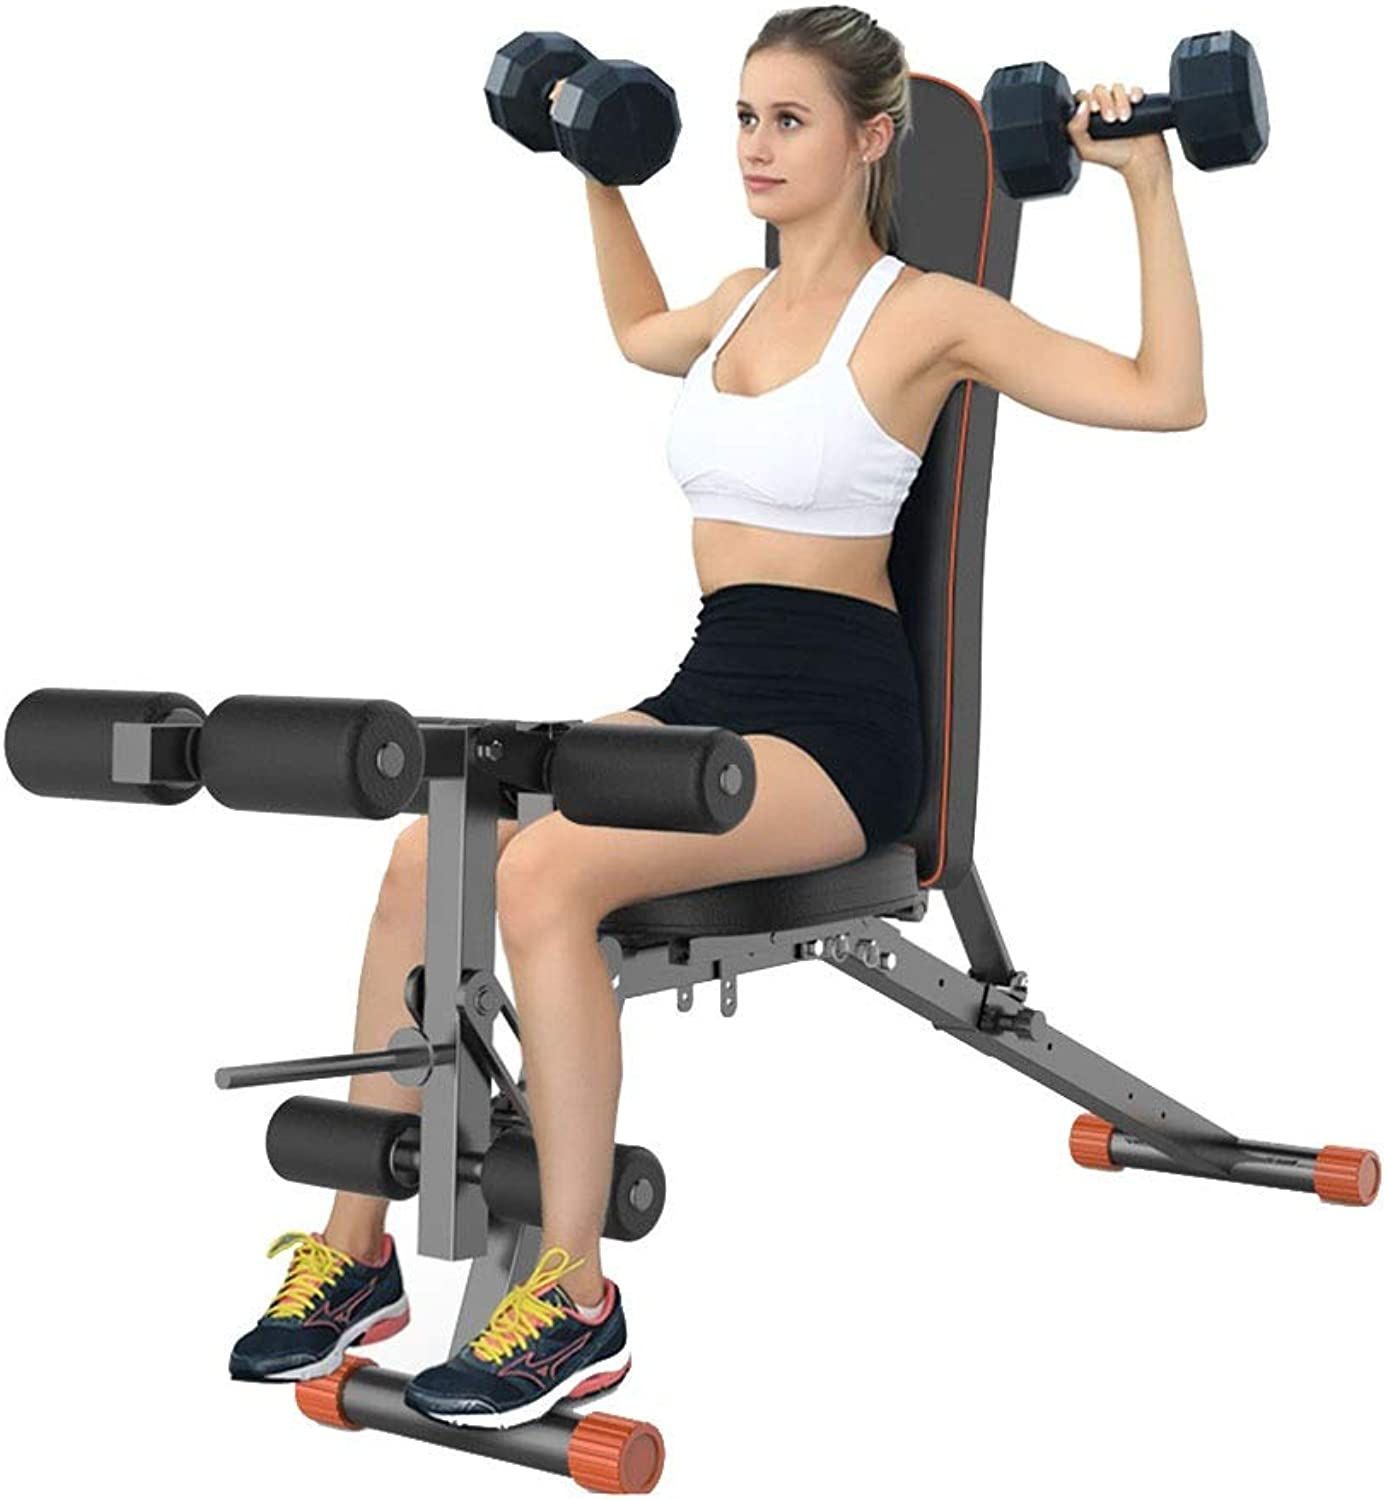 Adjustable Benches Foldable Weight Bench Dumbbell Bench Bench Chair Load 300kg Home Auxiliary Fitness Chair Gym Equipment Benches (color   Black, Size   164.5  35.5  43cm)